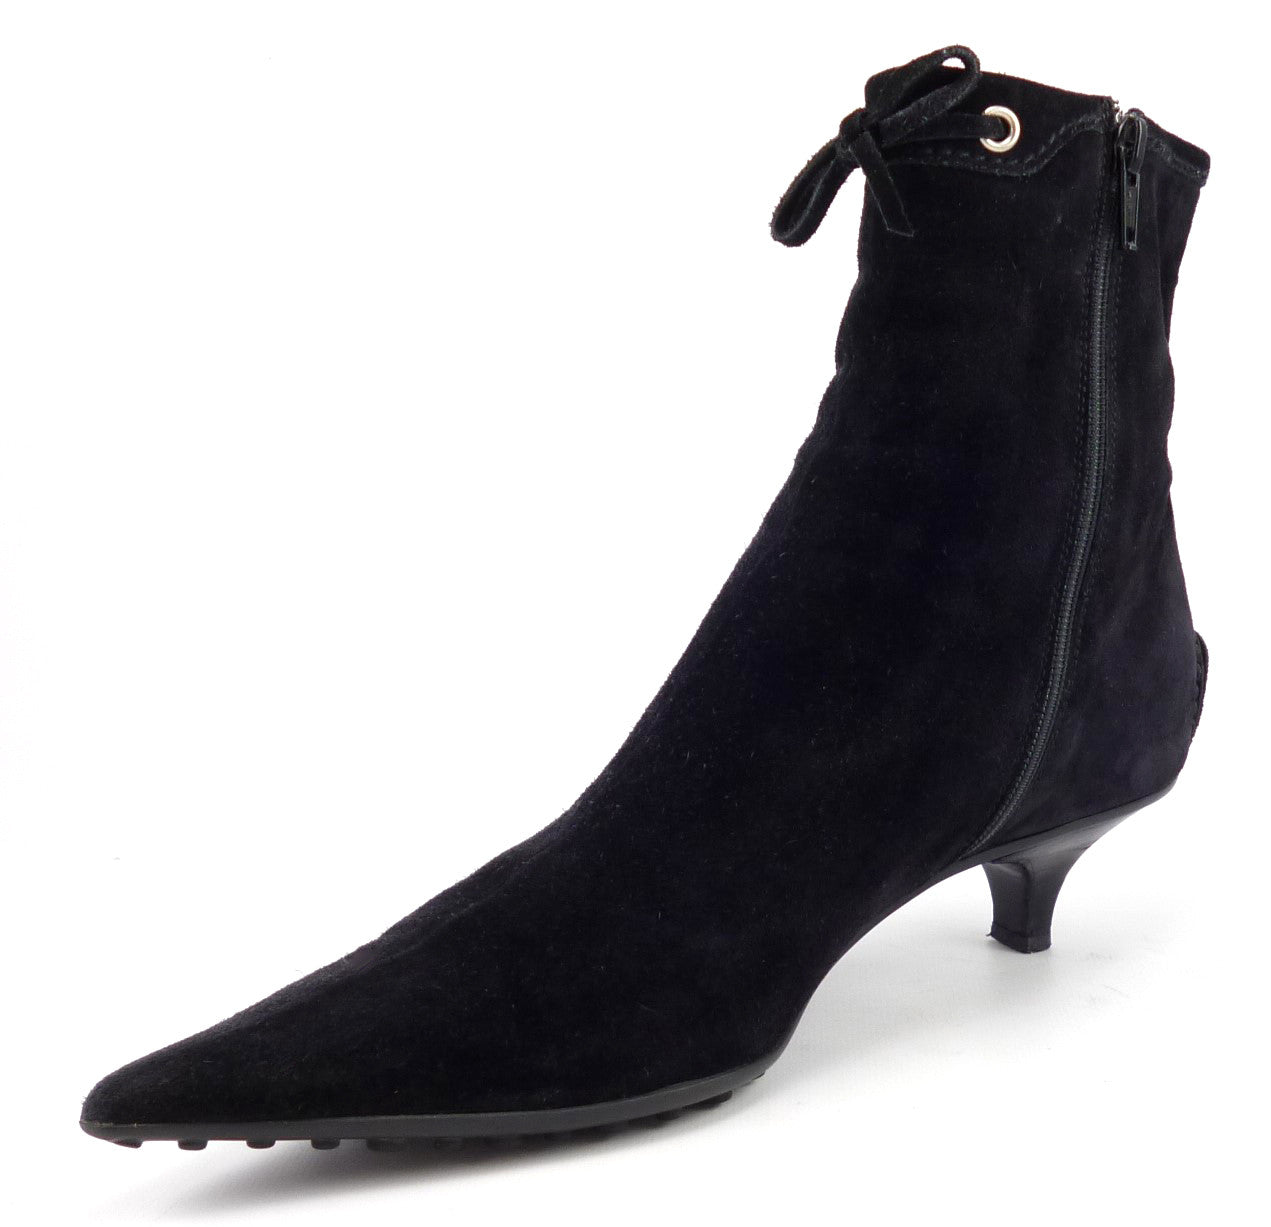 Car Shoe Womens Shoes 37.5, US 7.5 Suede Booties Black ...